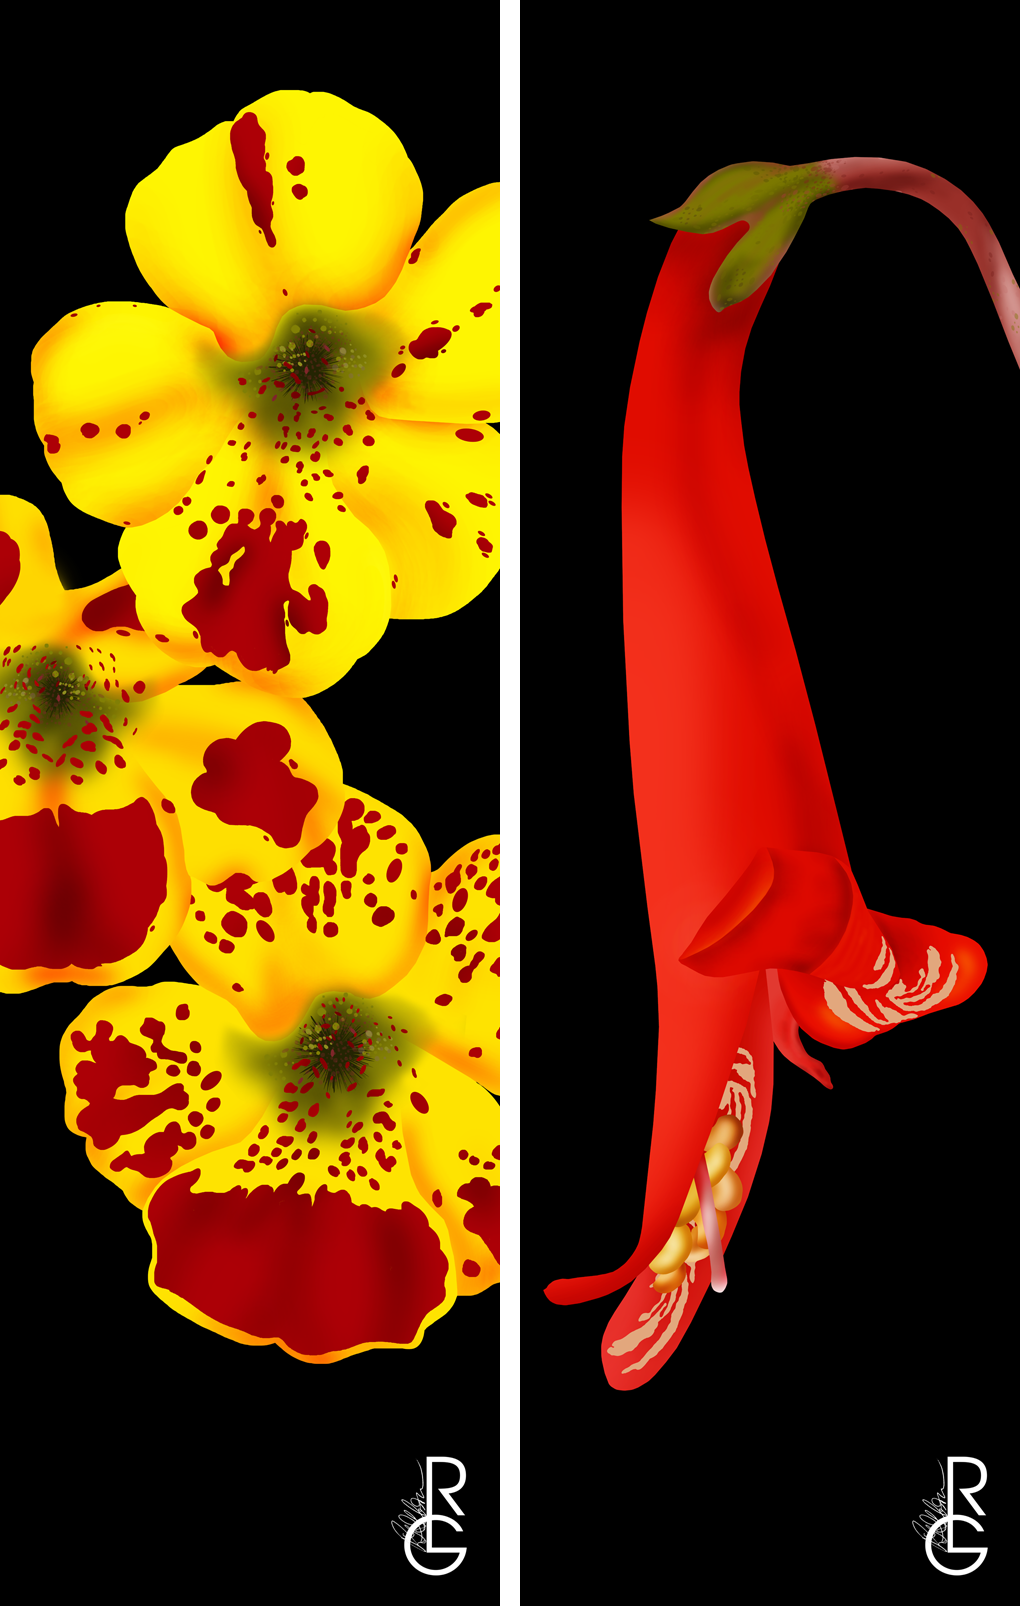 (left to right) Bigelow's Monkeyflower & Firecracker Penstamon, digitial illustration,by R.L. Gibson